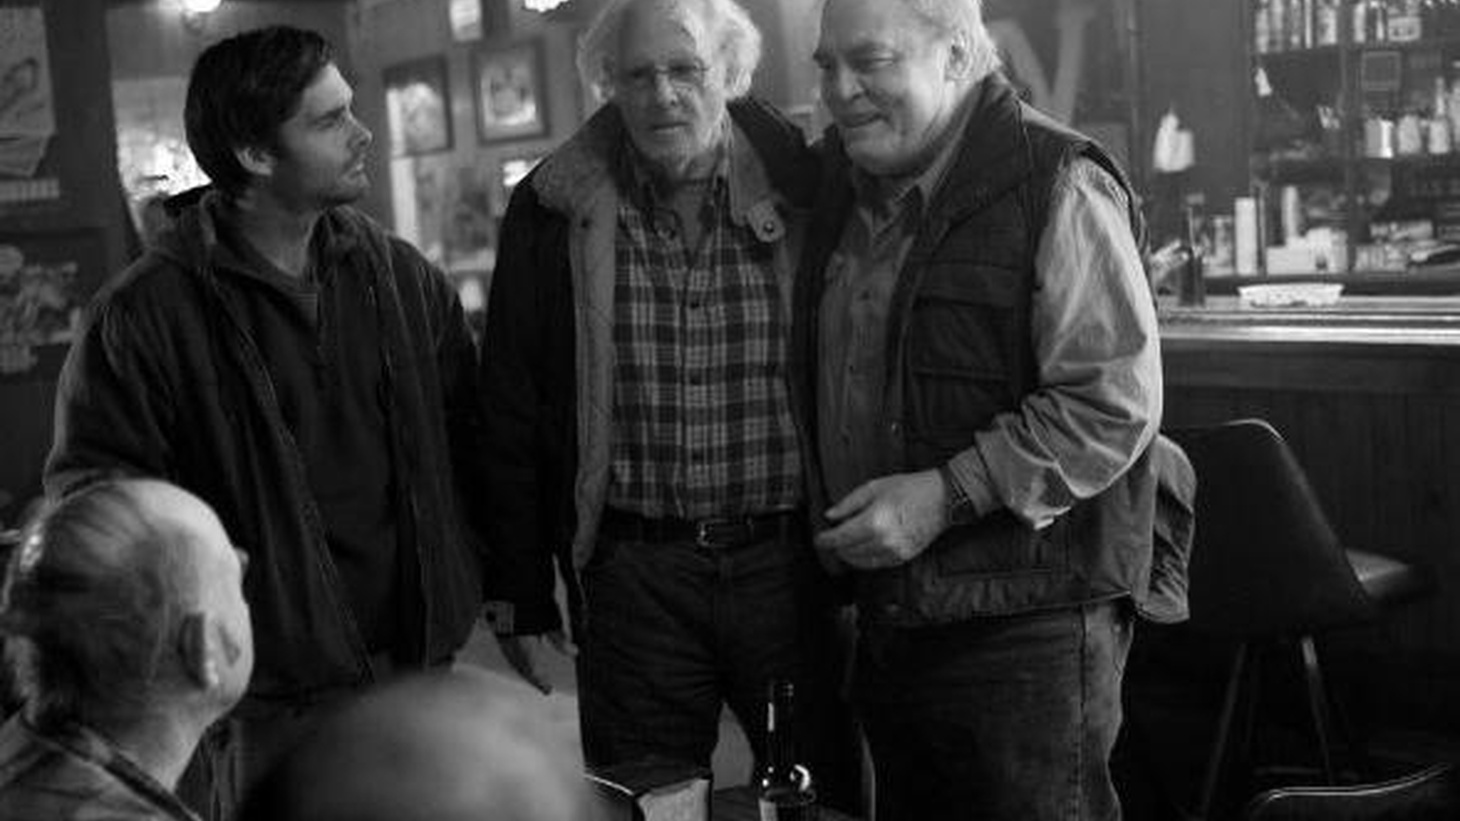 It was feast or feast at this year's 40th anniversary Telluride Film Festival, just one terrific movie after another...